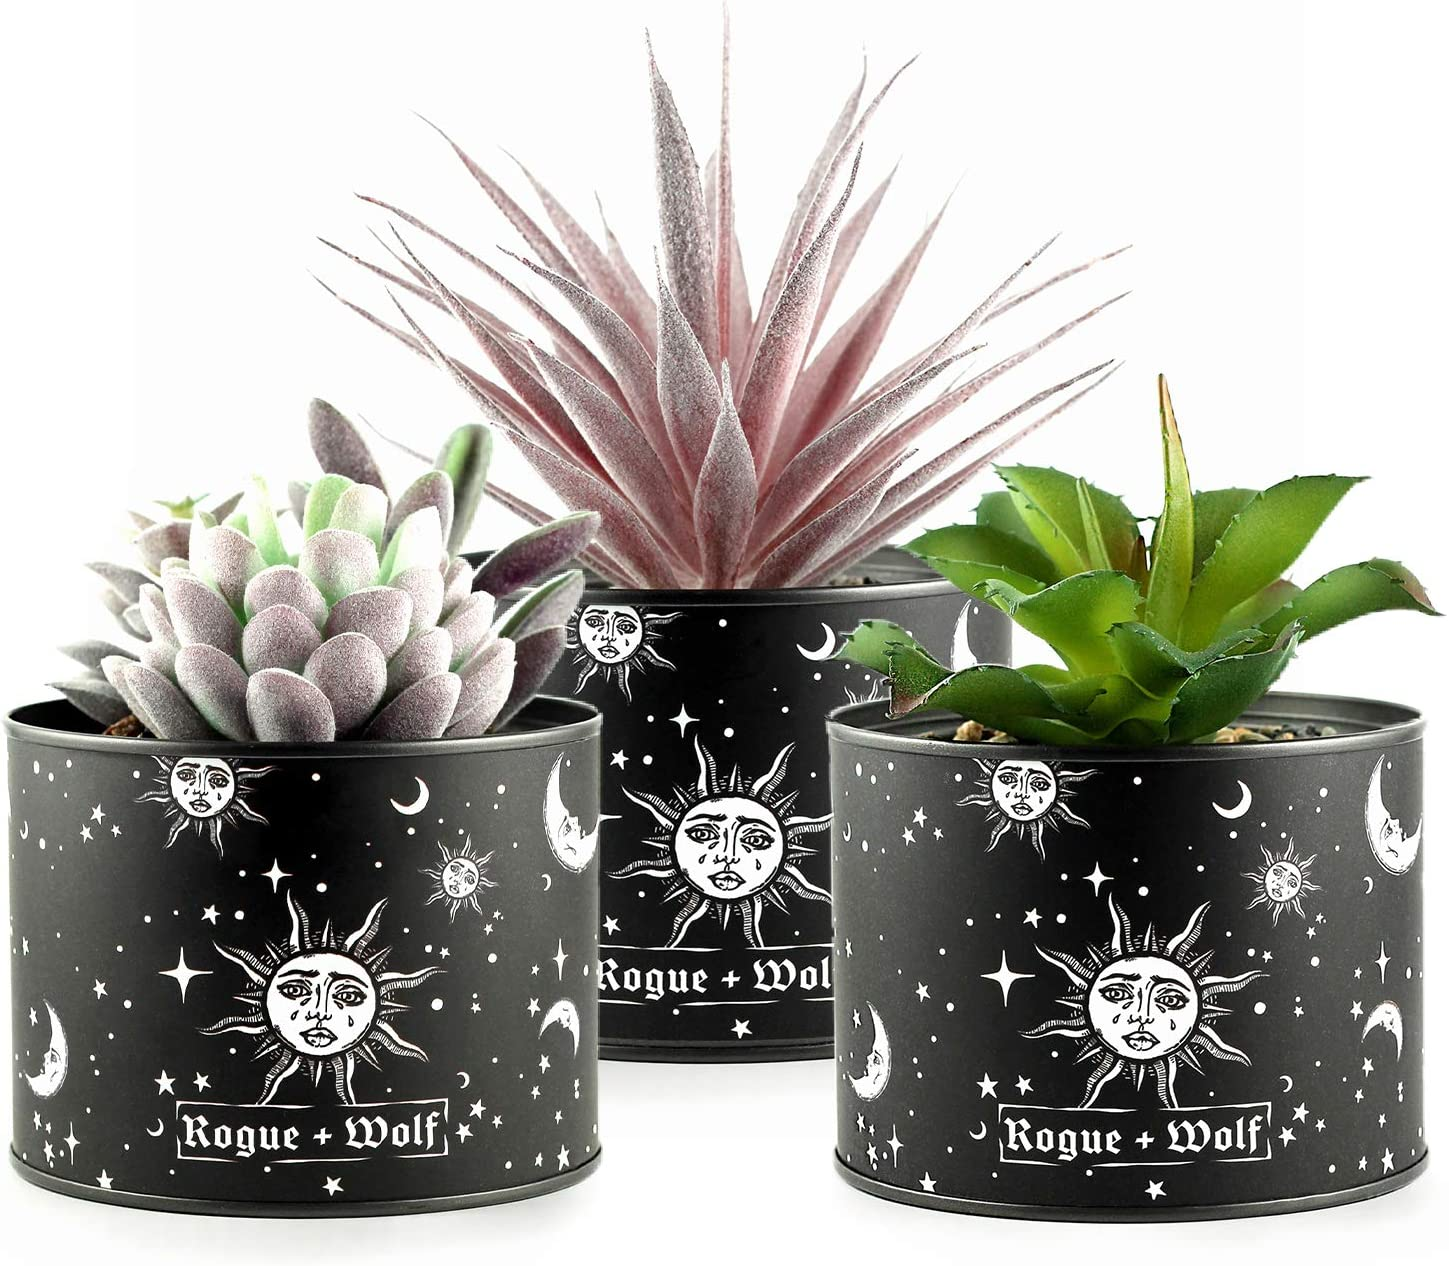 Pot Set of 3 Artificial Succulents in Plant Pots for Boho House Decor by Rogue + Wolf Indoor Faux Fake Succulent Plants in metallic planters Home Office Desk Decor for Women Aesthetic Bedroom